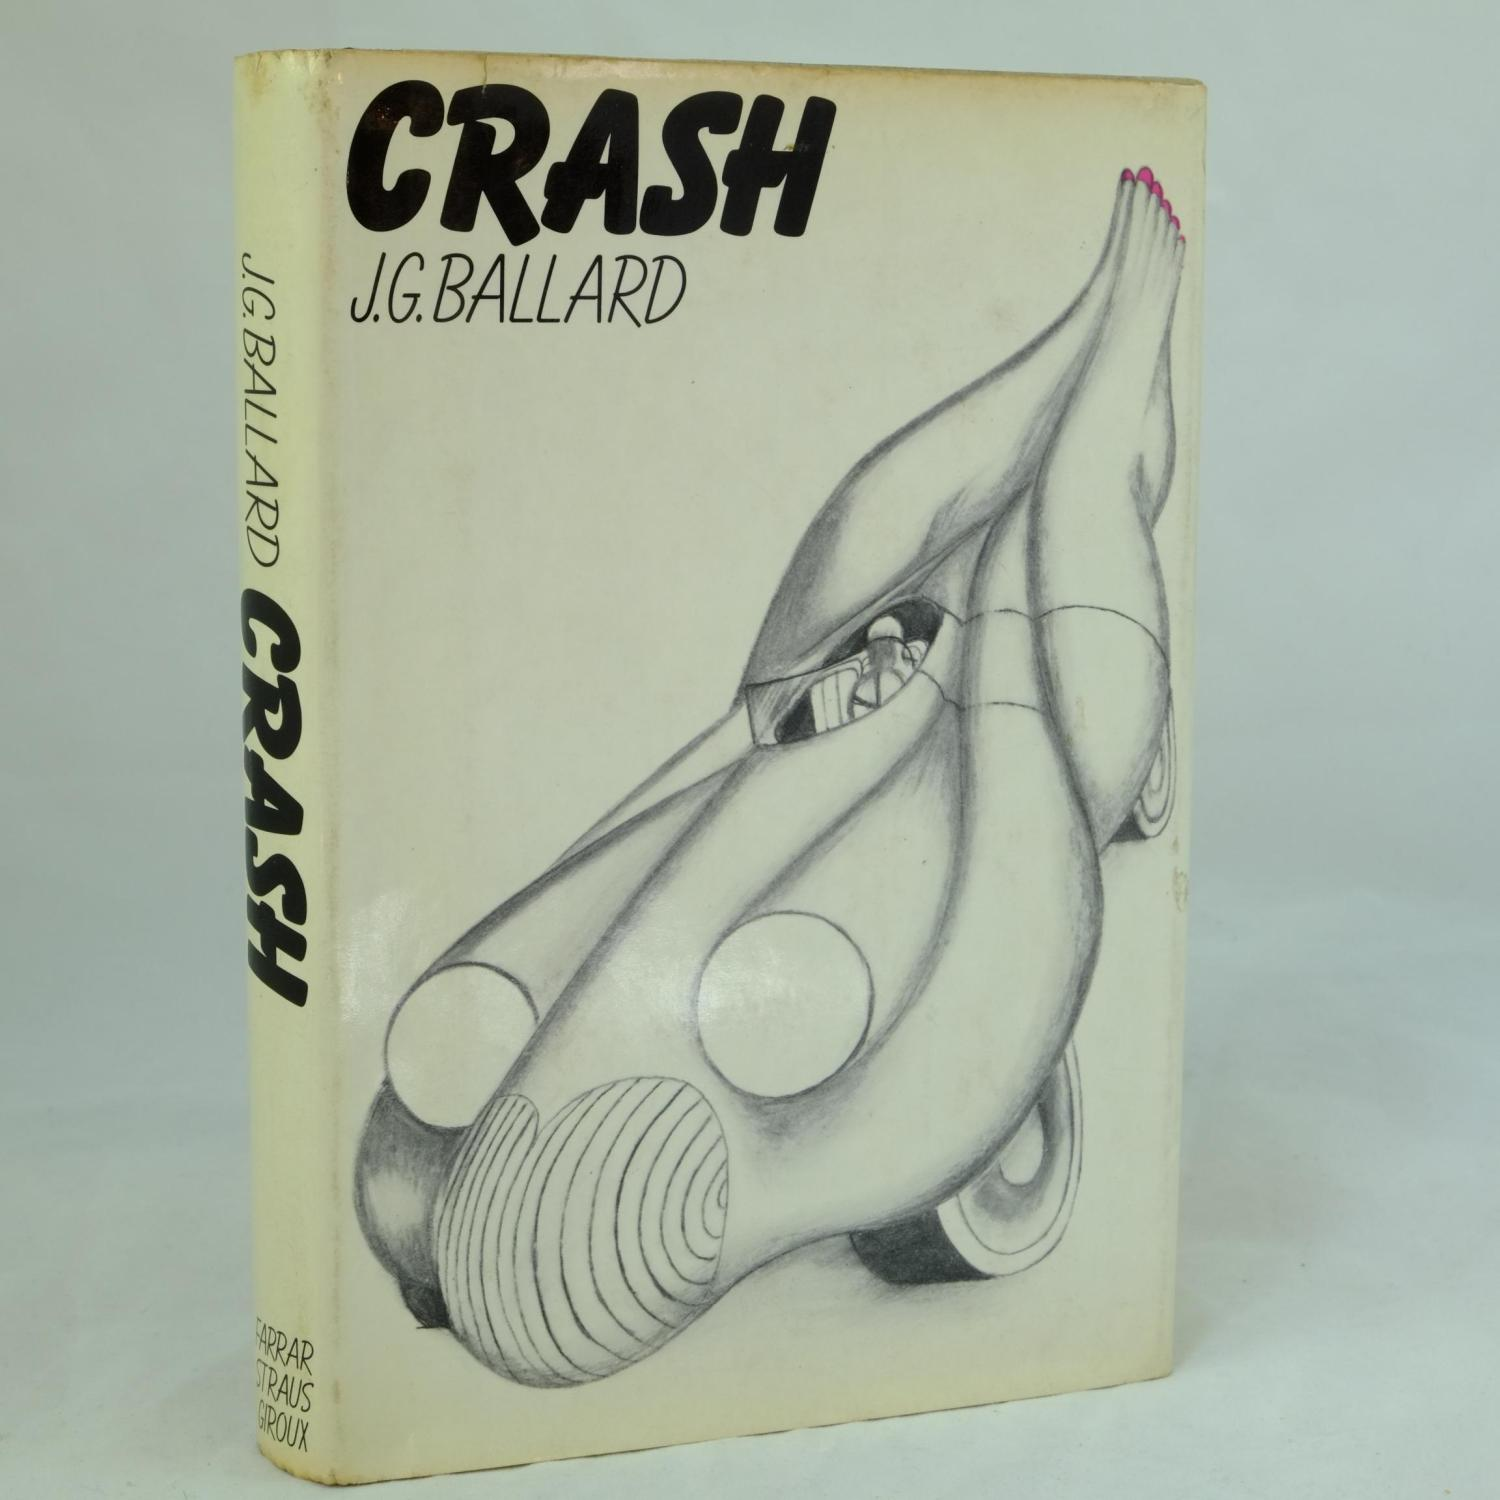 Crash J. G. Ballard Very Good Hardcover Crash by J G Ballard, First U. S. edition, Published by Farrer, Straus and Giroux, New York 1973, A very good first edition copy of this classic, and